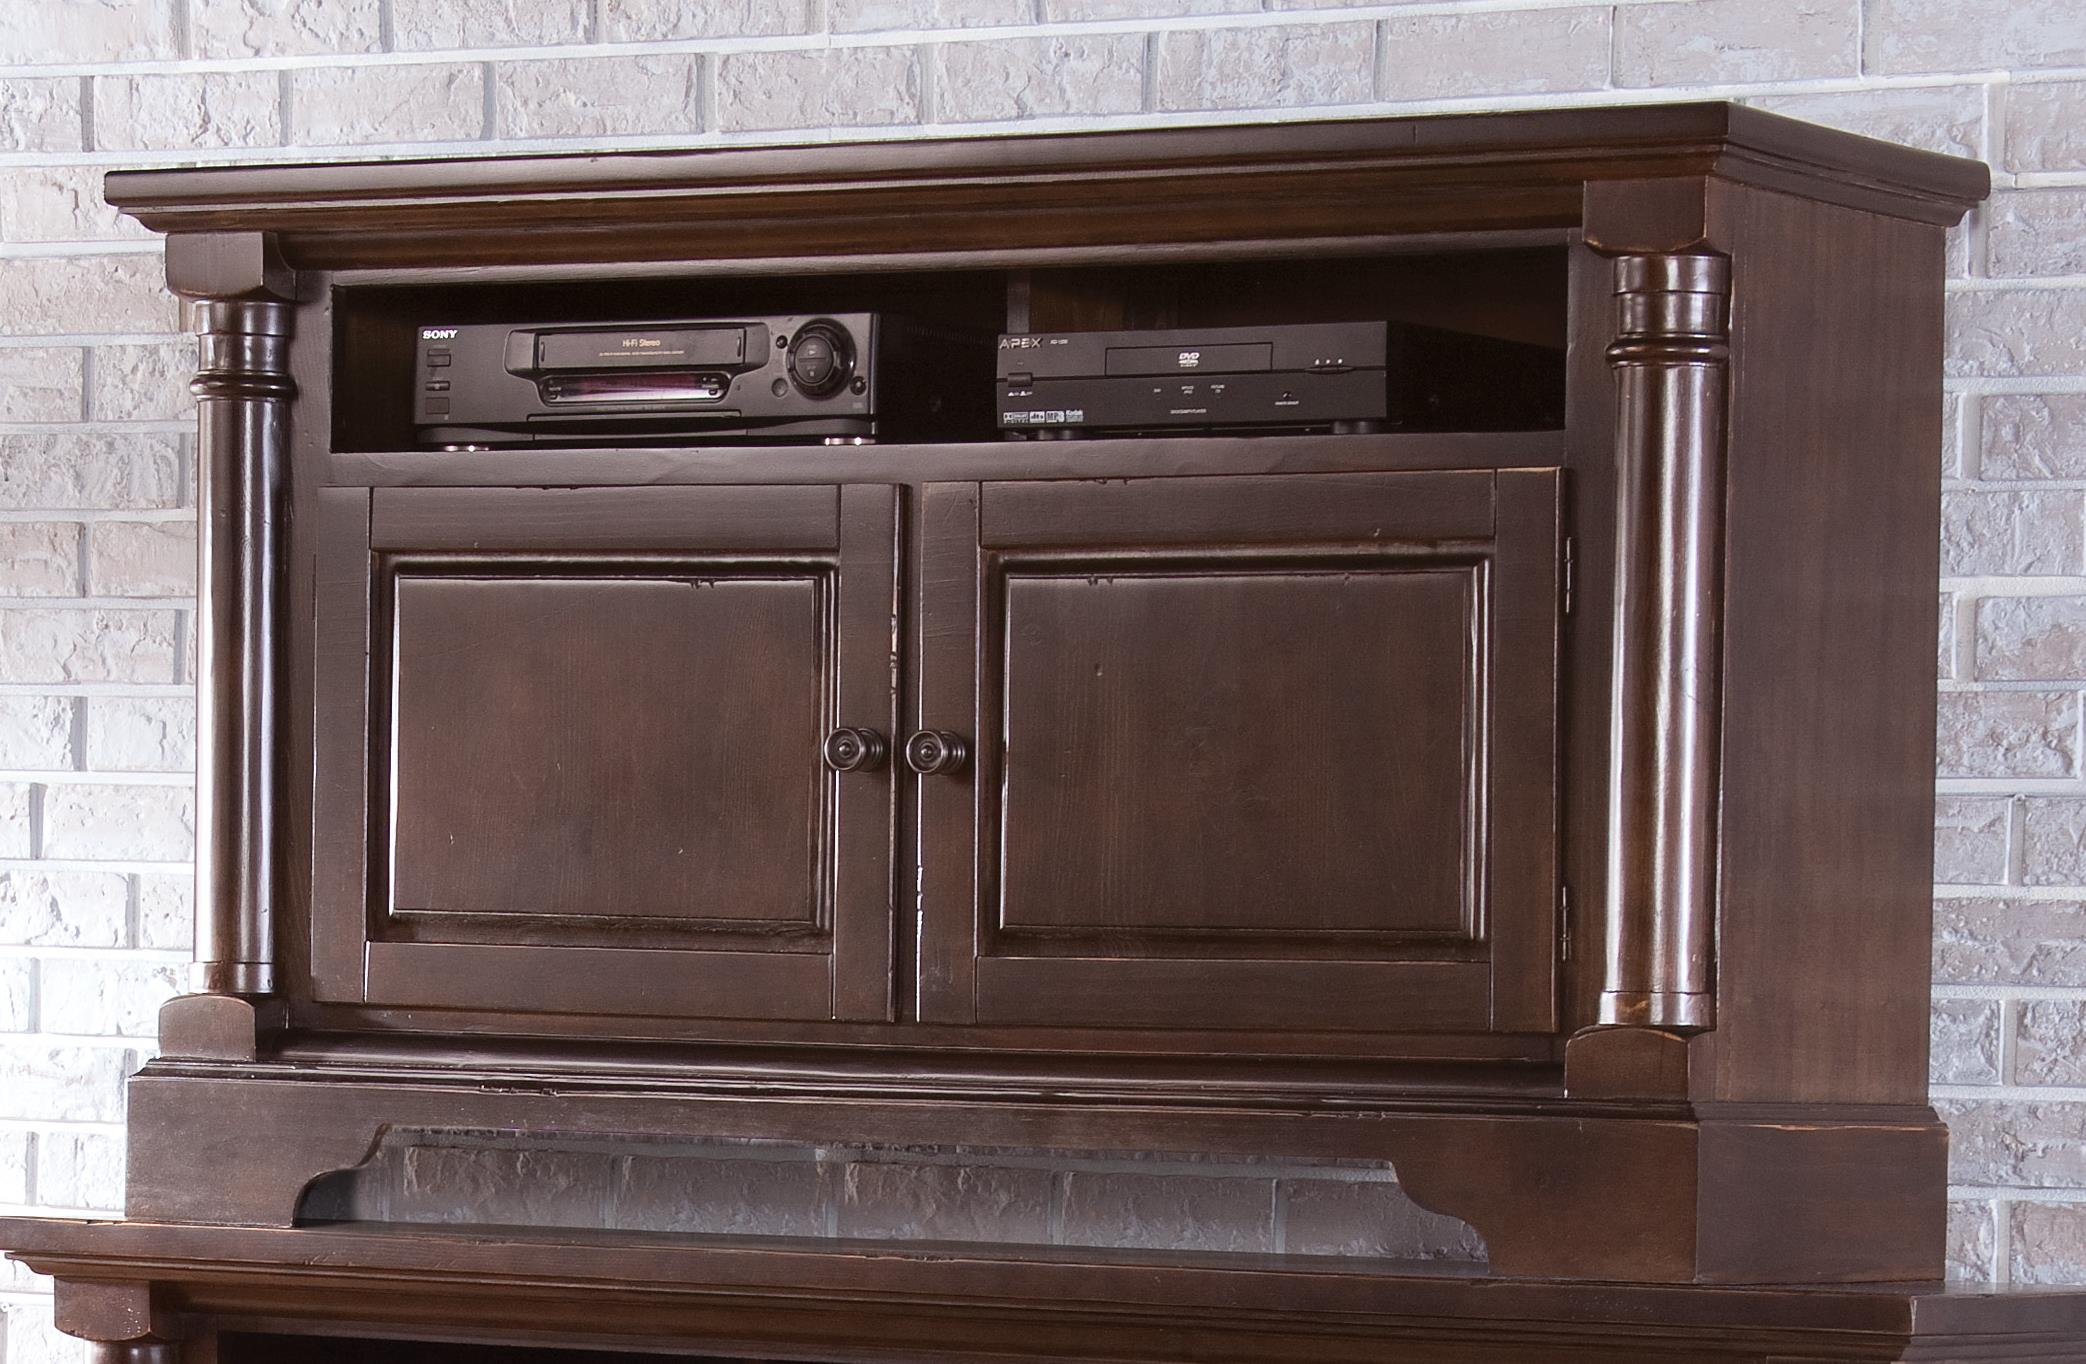 Progressive Furniture Gramercy Park 54 Inch Console - Item Number: P681E-54